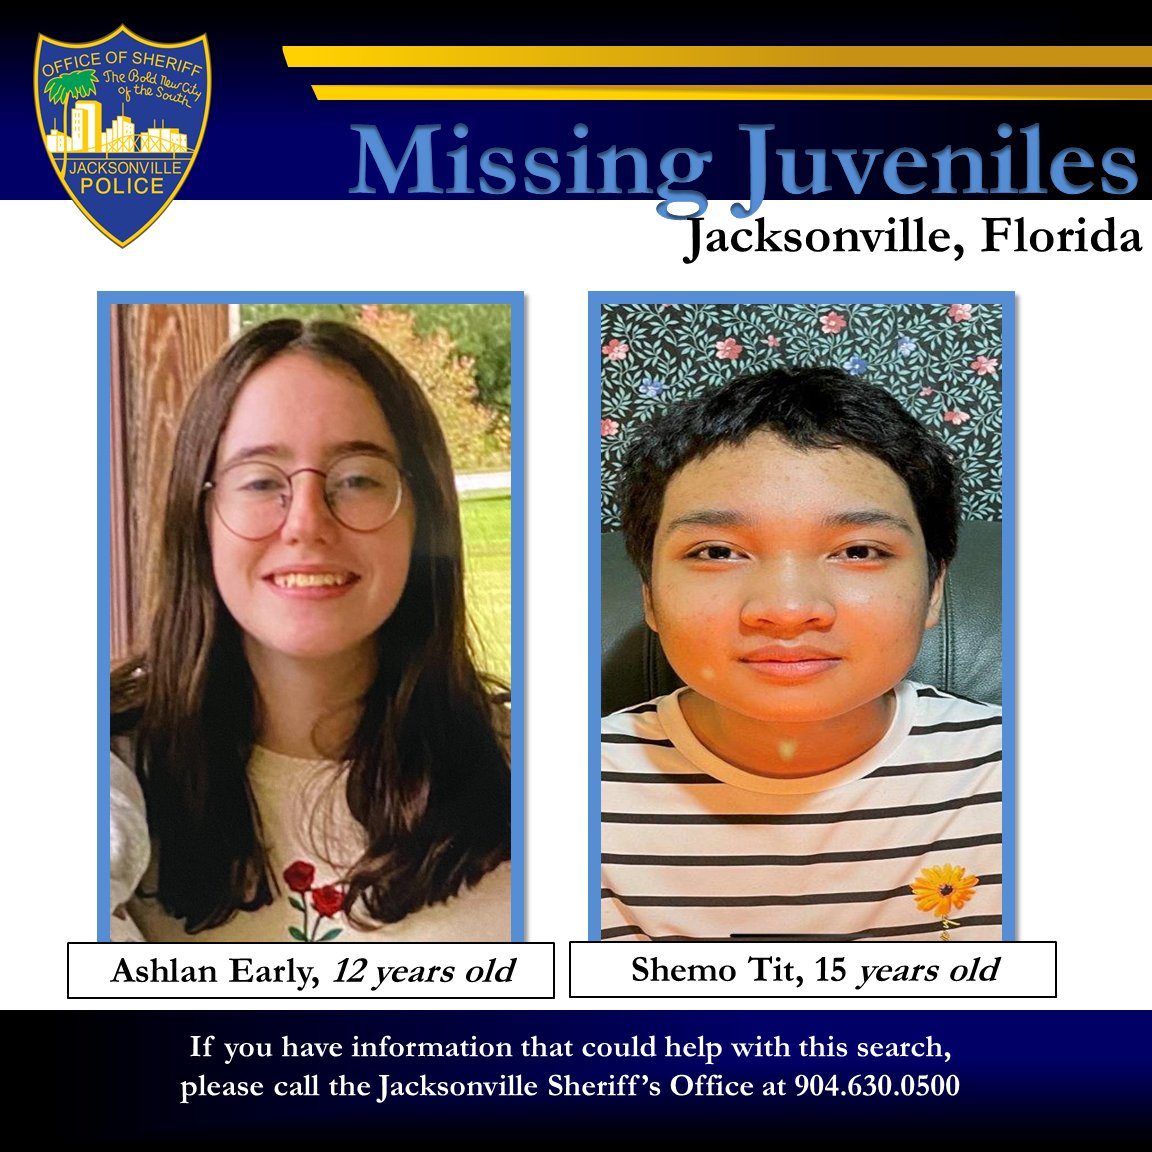 #JSO seeks missing juveniles - Ashlan Early (W/F, 53, 120, blue eyes, brown hair) and Shemo Tit (A/M, 50, 130, brown eyes, black hair). The two were last seen together on 3.6.21 at around 6:15 pm near I10 and Lane Avenue. Anyone having info is asked to call 904-630-0500.